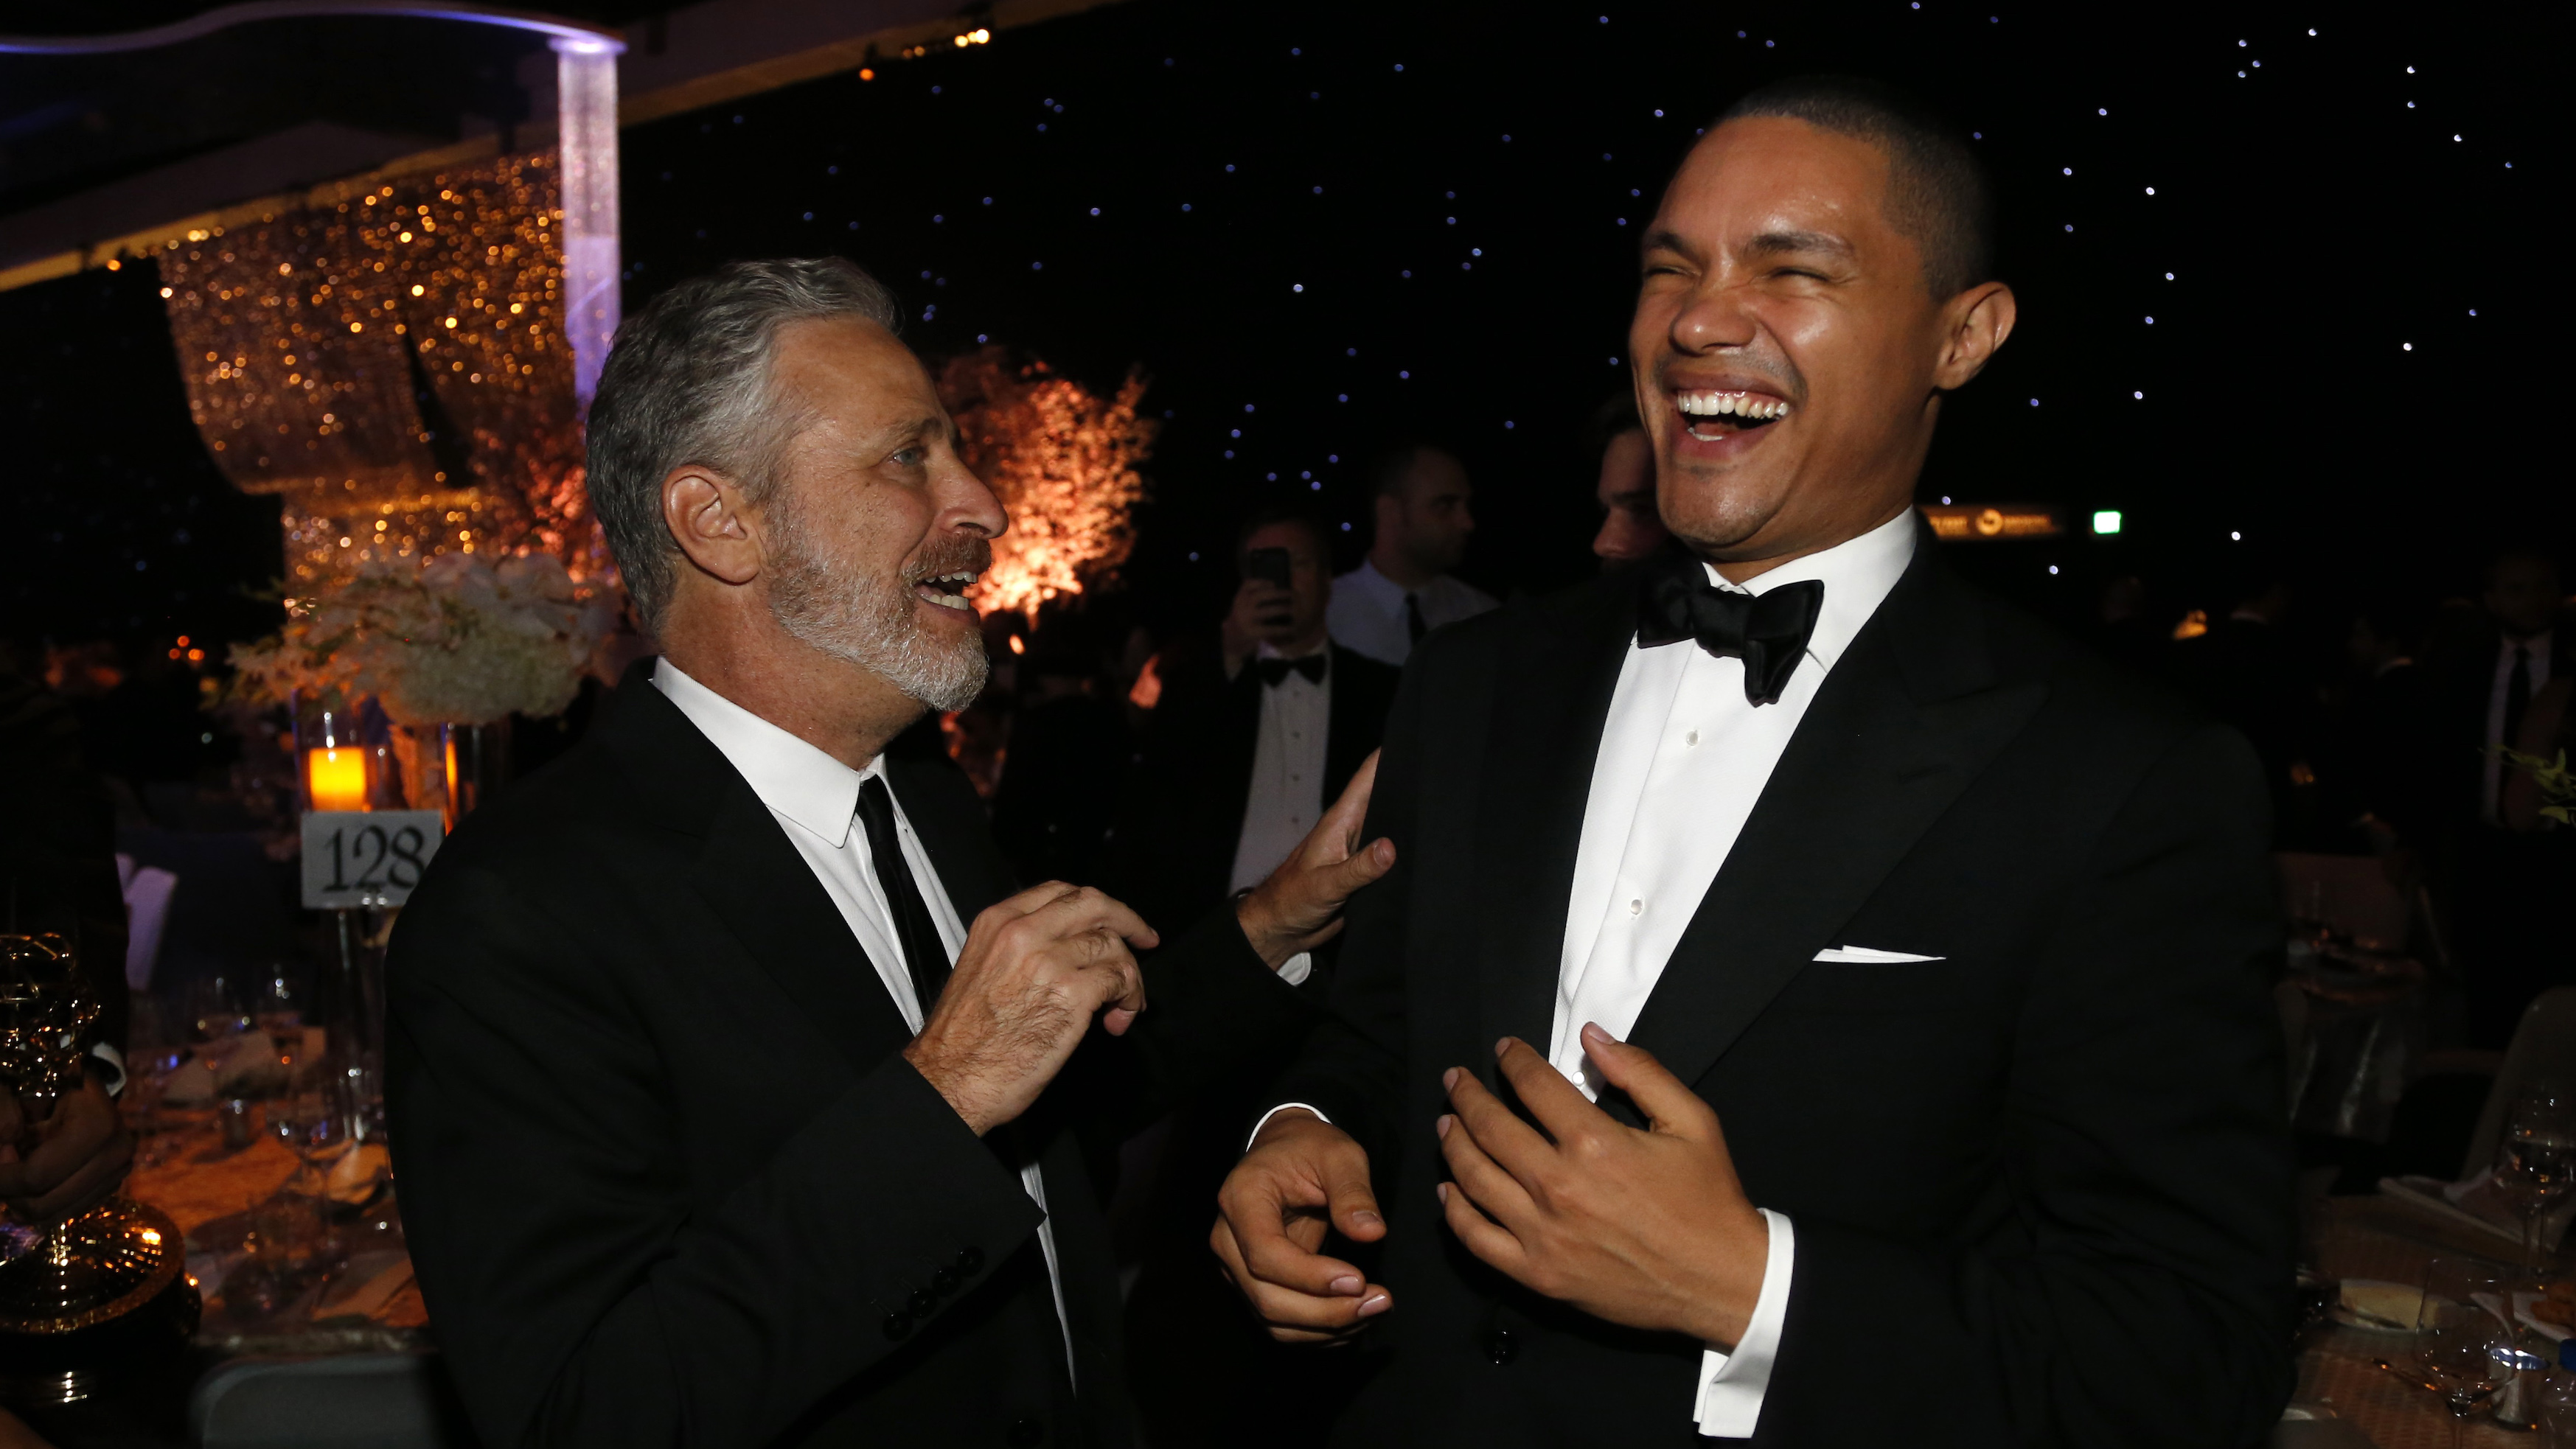 Television personality Stewart talks with Noah at the 67th Annual Primetime Emmy Awards Governors Ball in Los Angeles